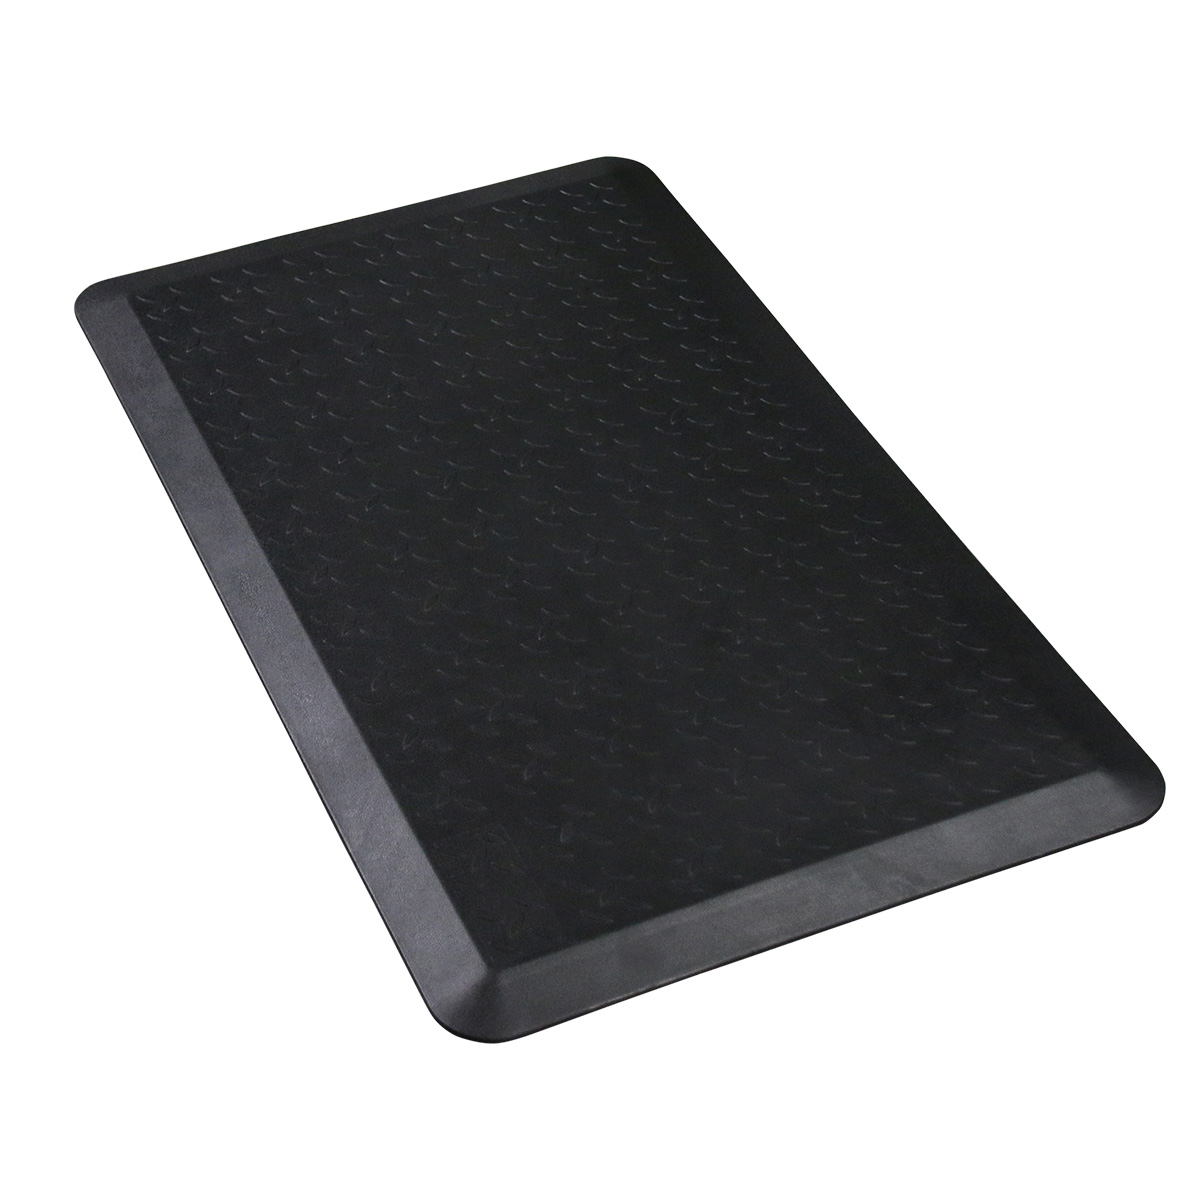 OrthoMat37 Anti-Fatigue Mat